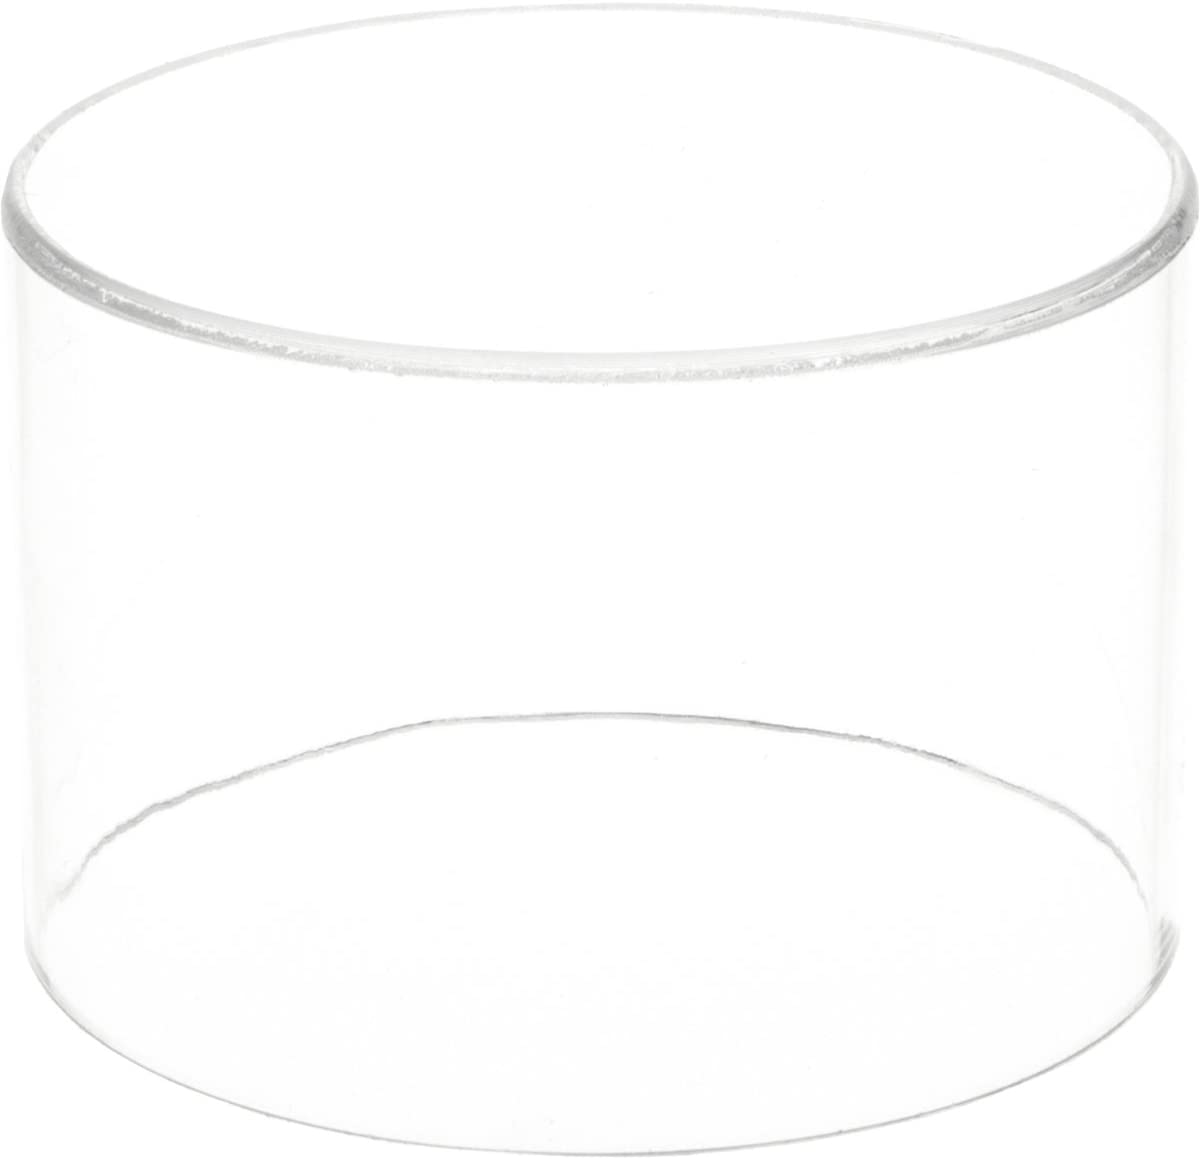 Plymor Clear Acrylic sale Round Cylinder Popular brand inches 4 Hei Display Riser